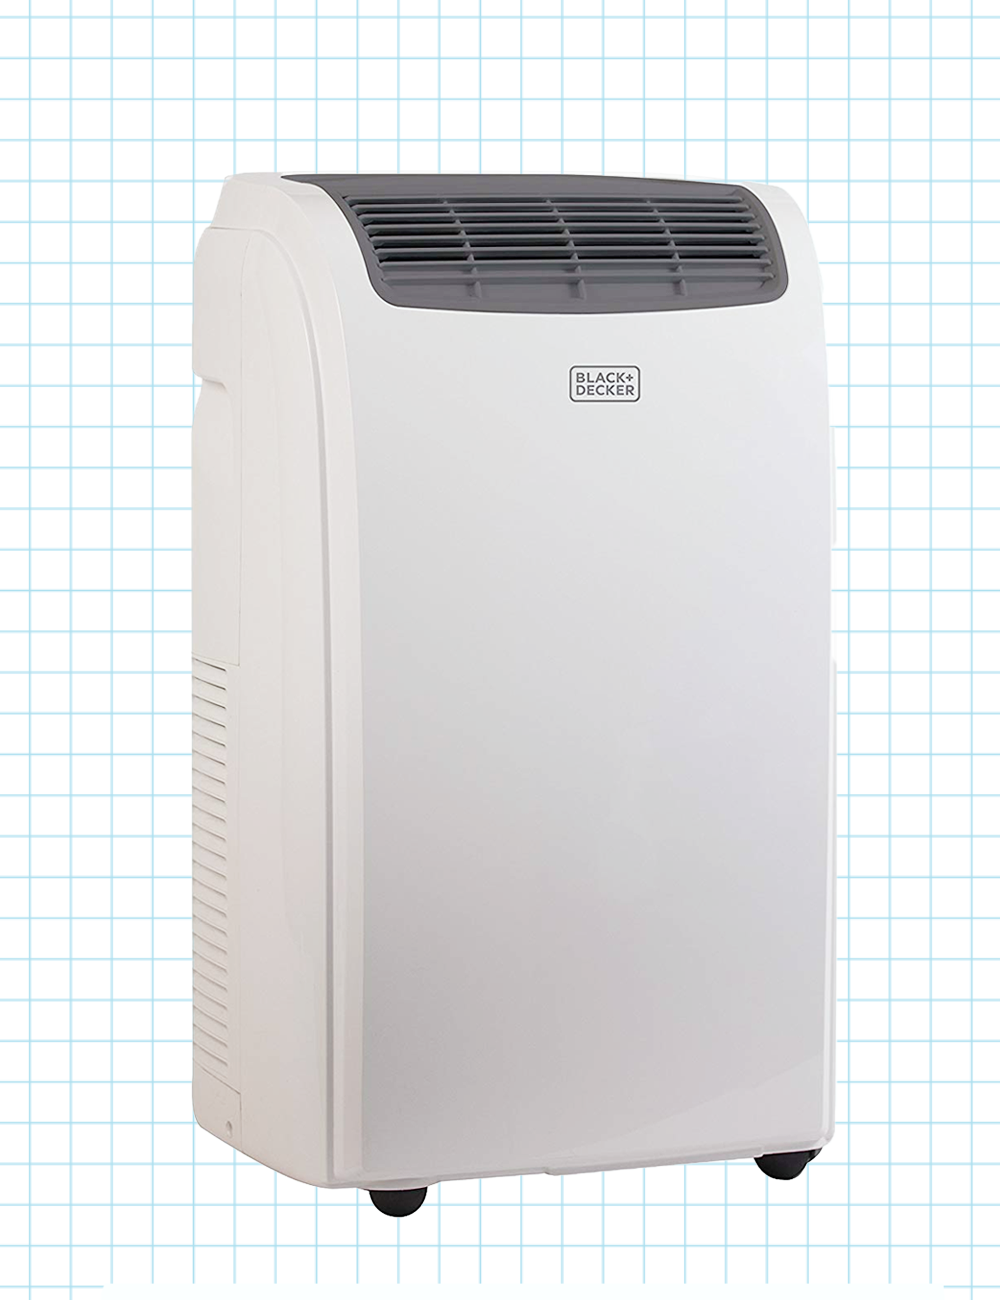 Portable Air Conditioner In 2020 in 2020 Portable air